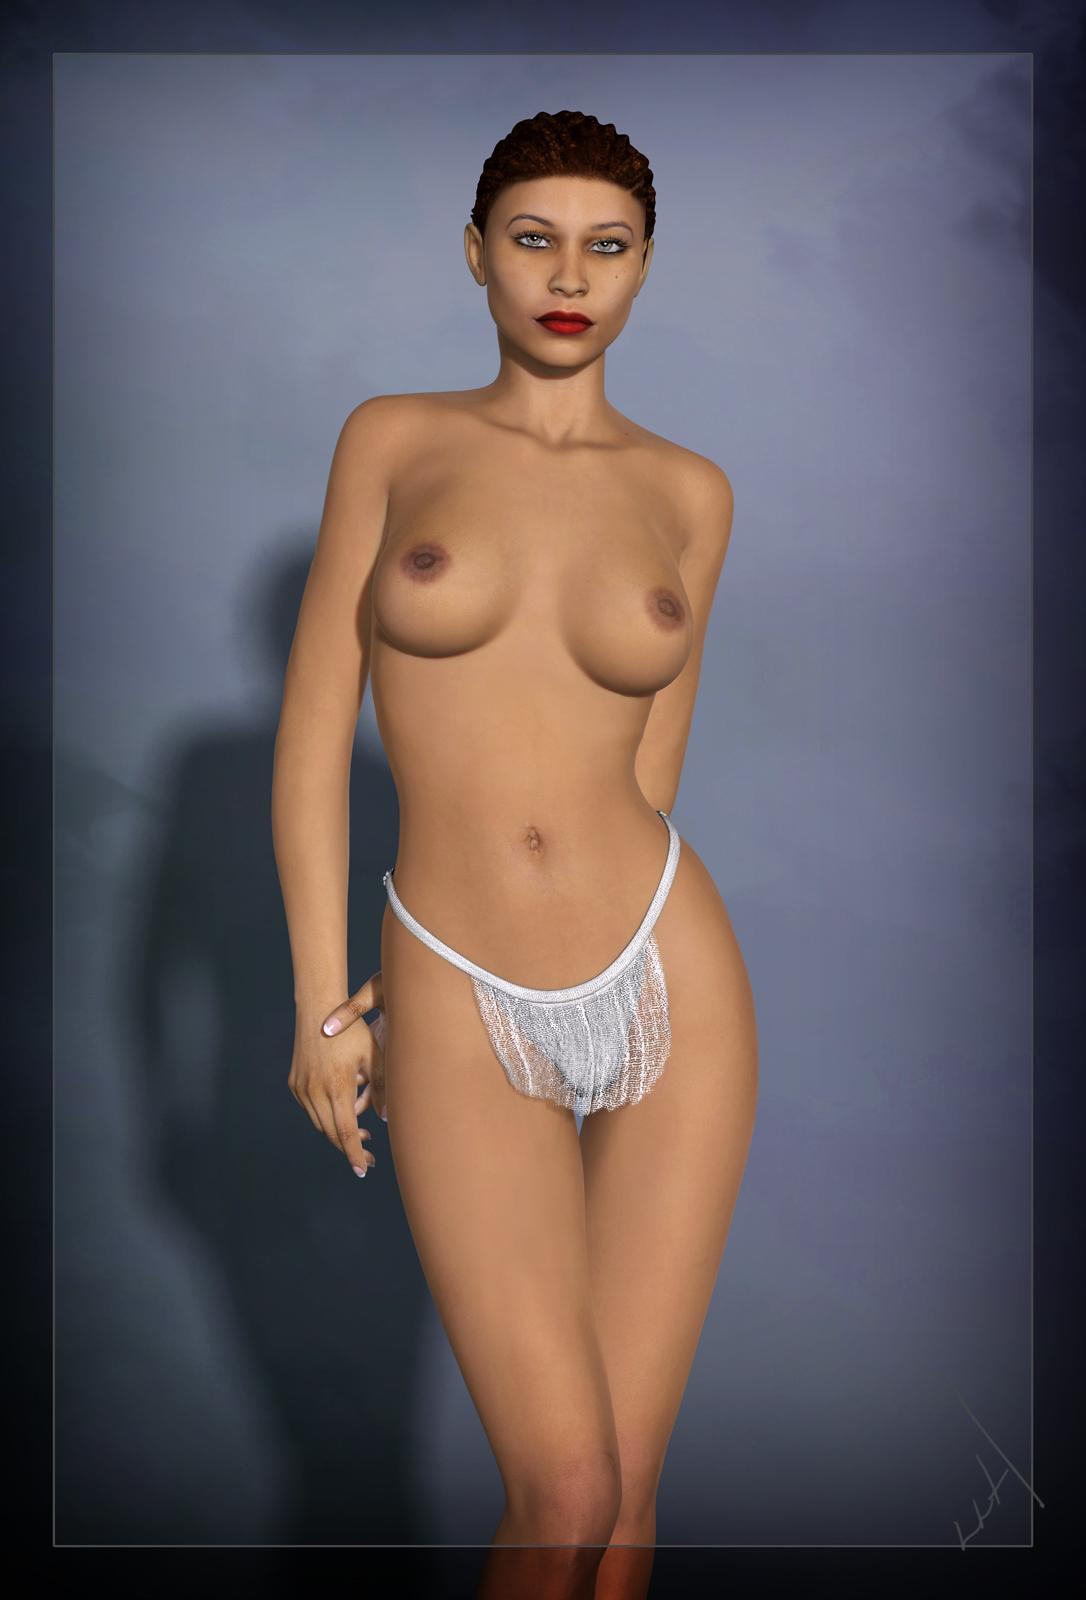 Zy Shaders (Warning Nudity)